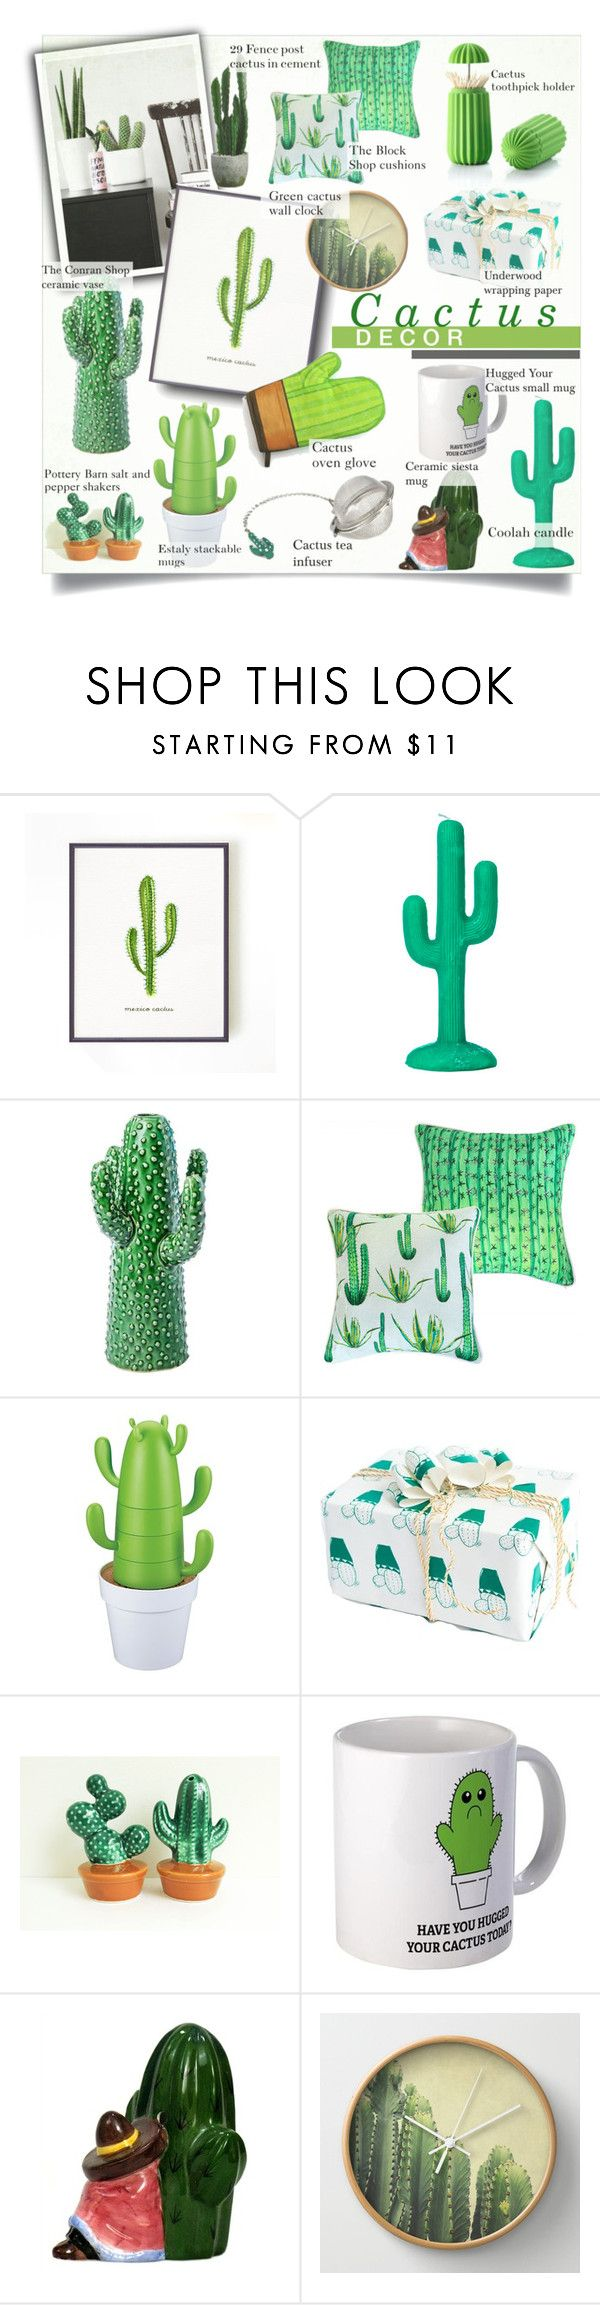 """Cactus Decor"" by alexandrazeres ❤ liked on Polyvore featuring interior, interiors, interior design, home, home decor, interior decorating, Sunnylife, Conran, GREEN and Cactus"